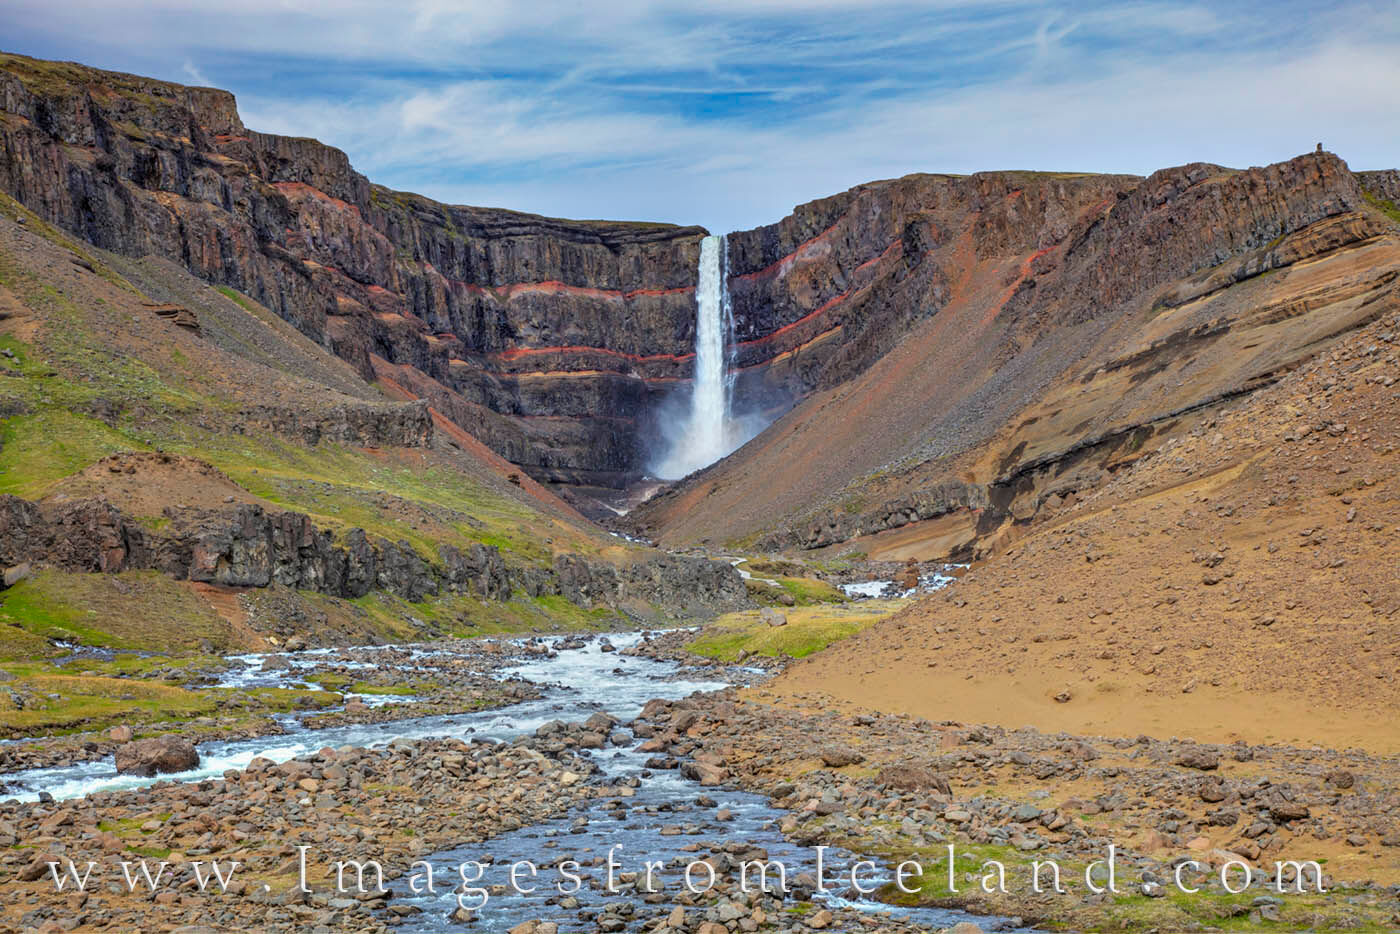 Hengifoss is the 3rd highest waterfall in Iceland and plummets 420 feet. It is located in Hengifossá in Fljótsdalshreppur...